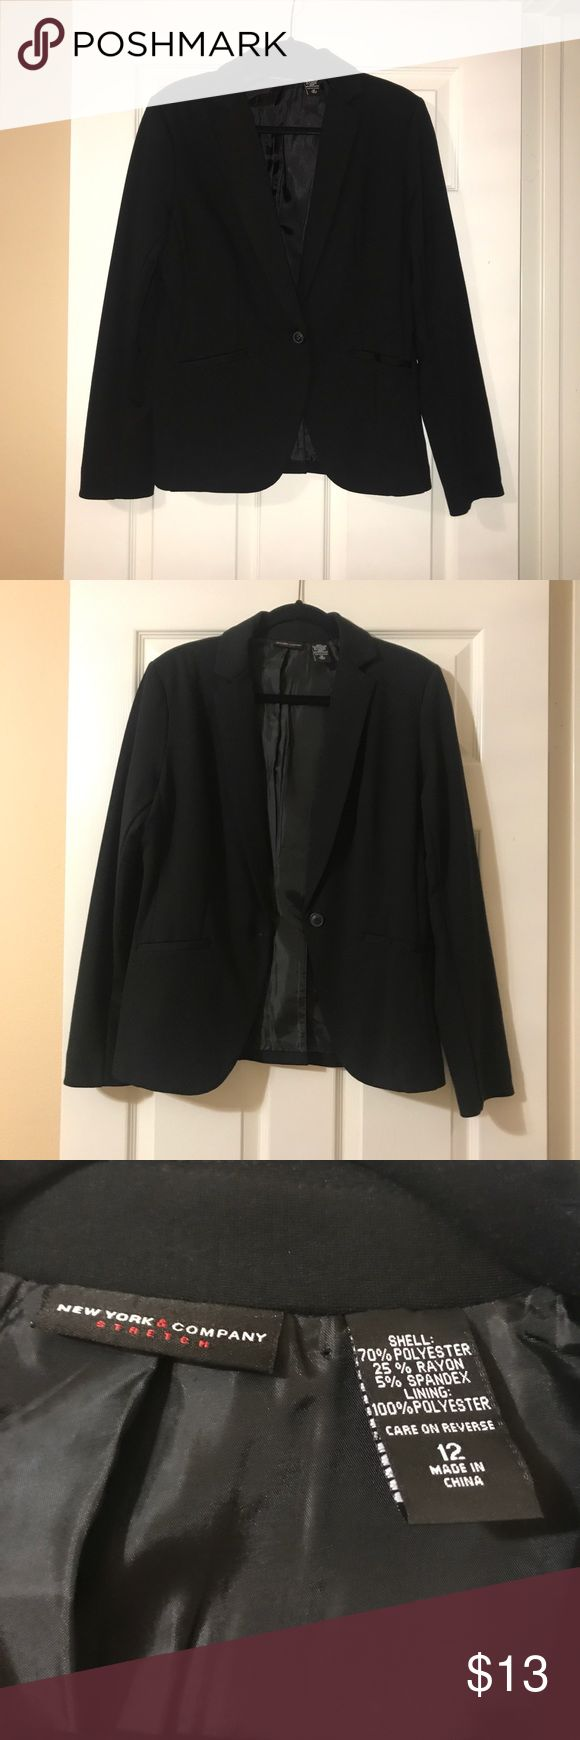 New York & Company Black Blazer Purchased some time in 2008 for around $60. Worn twice. Has no flaws or signs of wear at all.   Sizing runs true to size. My mom wore this she's 5'9, weighs about 170 pounds with 36D breasts and this fit her perfectly!   N O TRADES!! NO MODELING!! PRICE IS FAIR, FIRM & FINAL!! ALL OFFERS WILL BE DECLINED! New York & Company Jackets & Coats Blazers